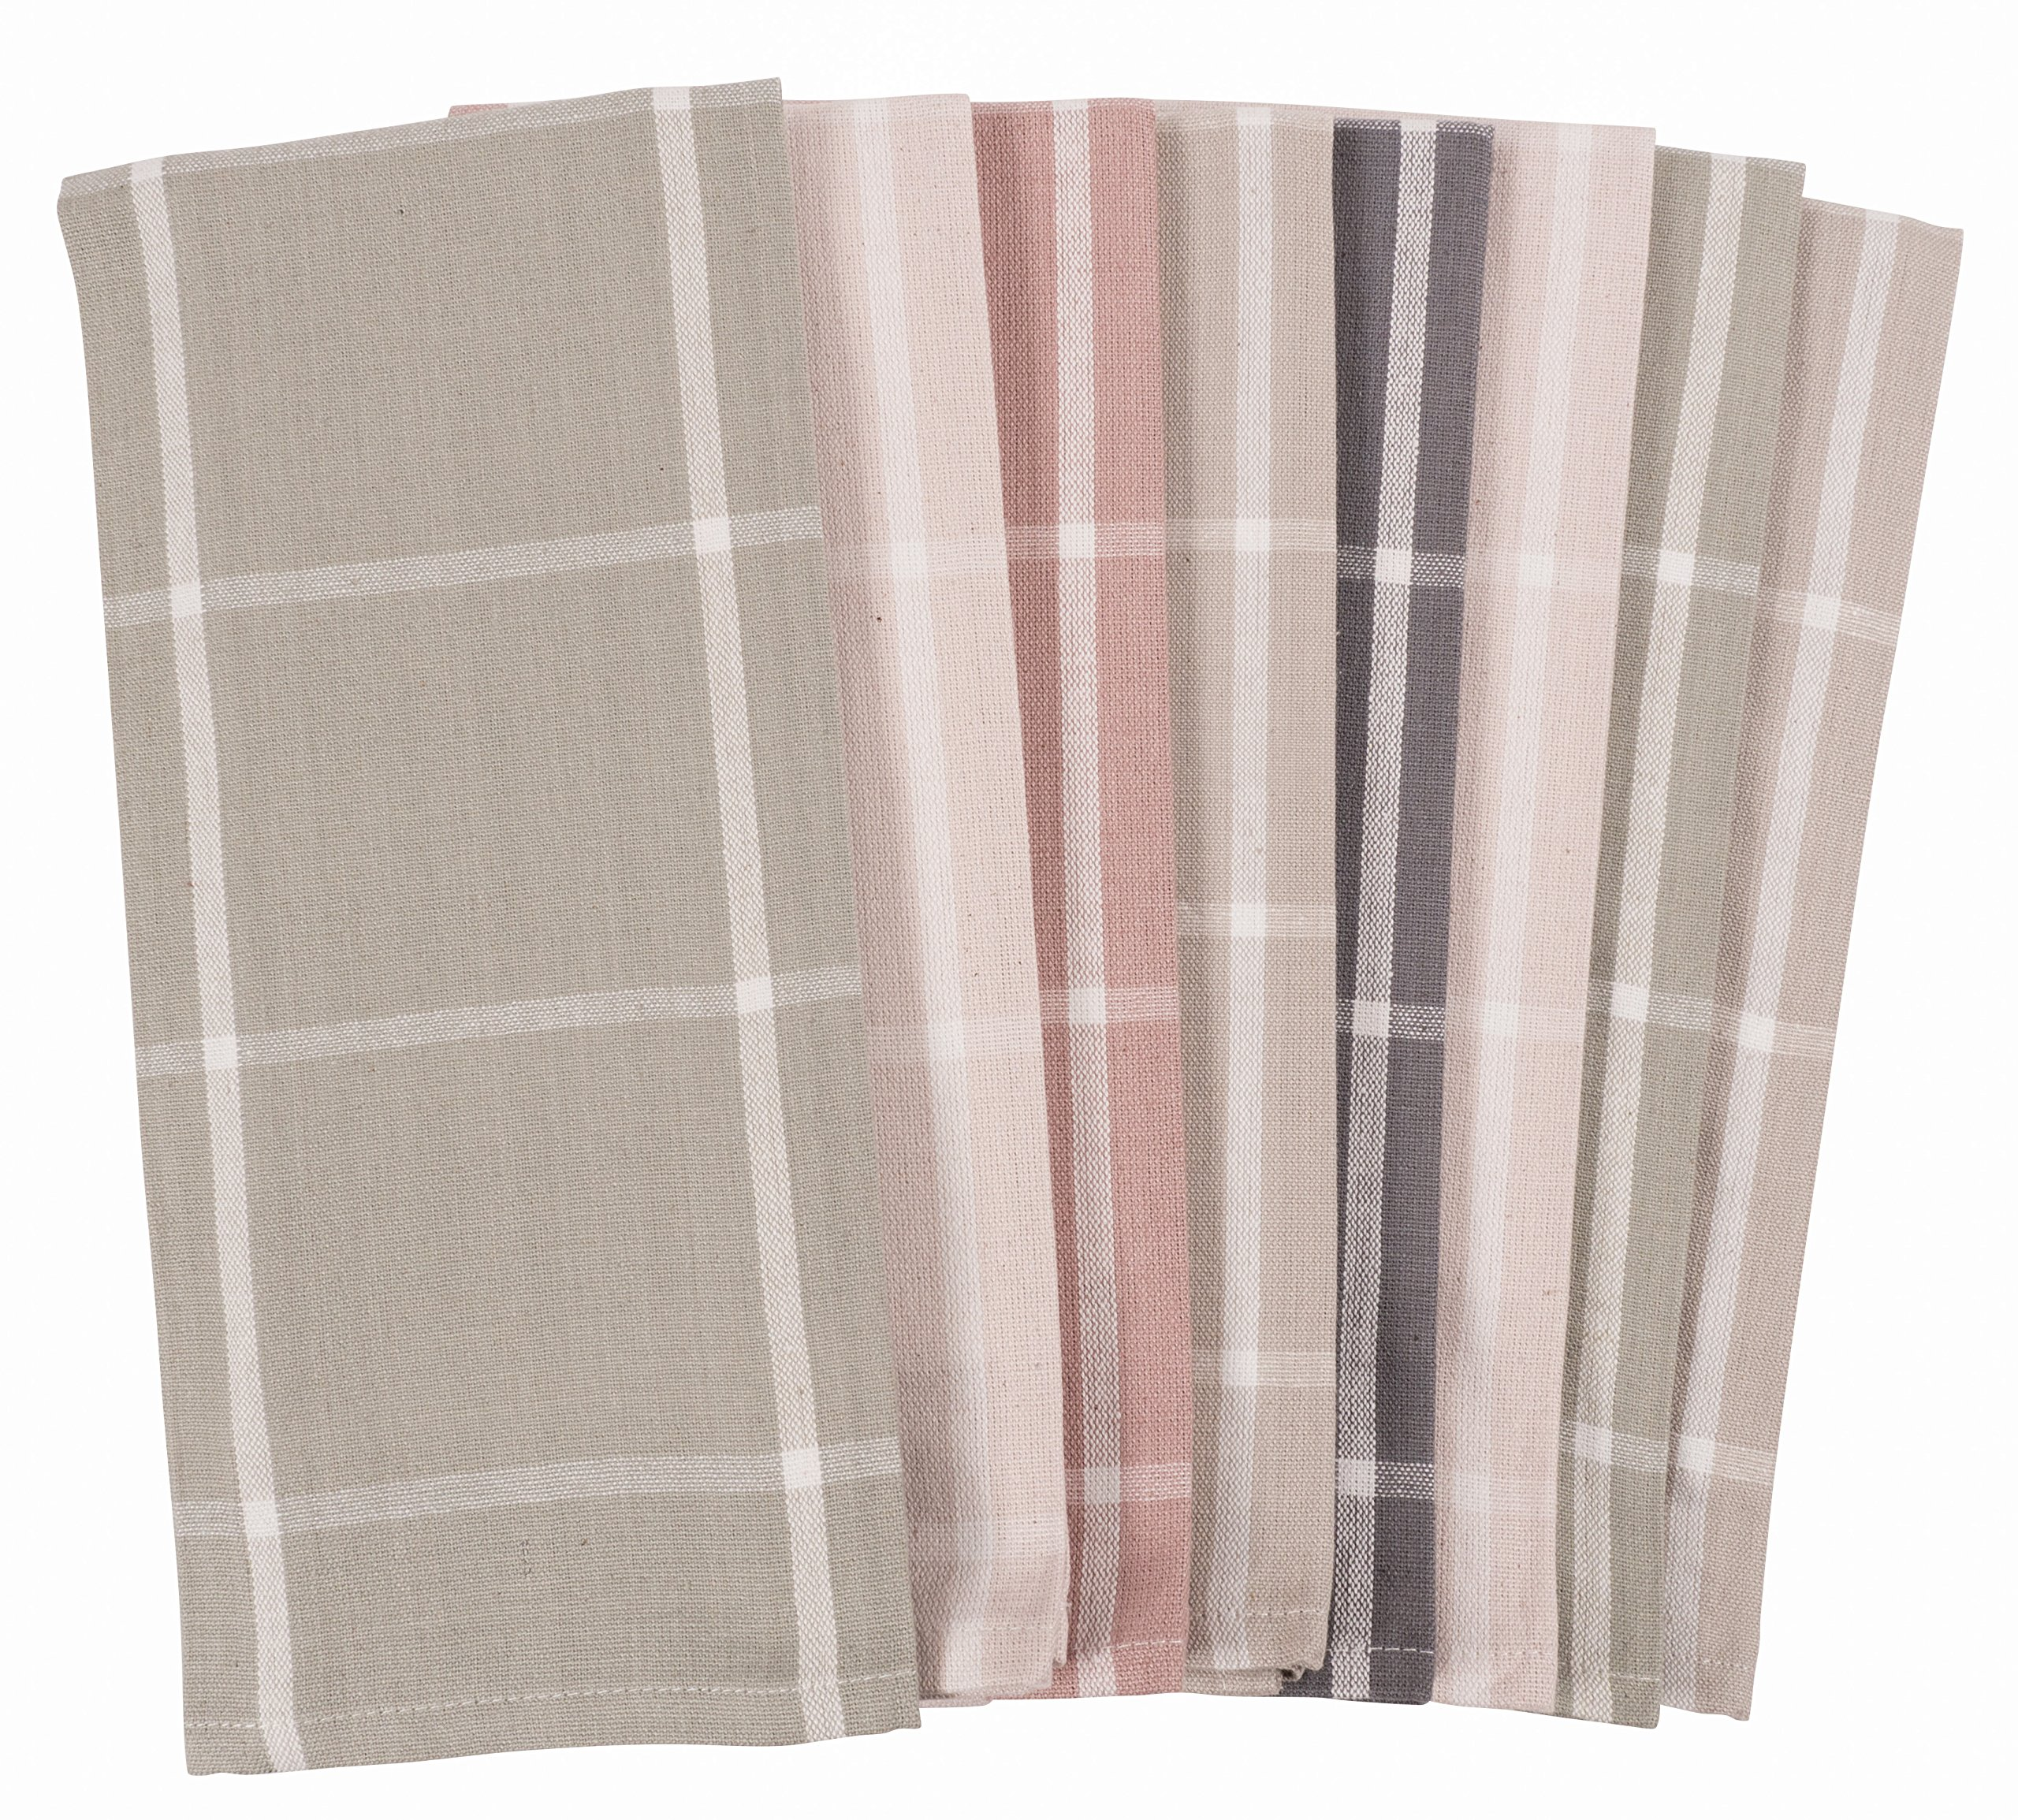 KAF Home Striped Kitchen Towels | Set of 8, 100% Pure Cotton, 16'' x 26'' Kitchen Towels | Absorbent, Soft, Fun, and Beautiful Kitchen Towels | Perfect Splash of Fashion in Any Kitchen (Neutrals)